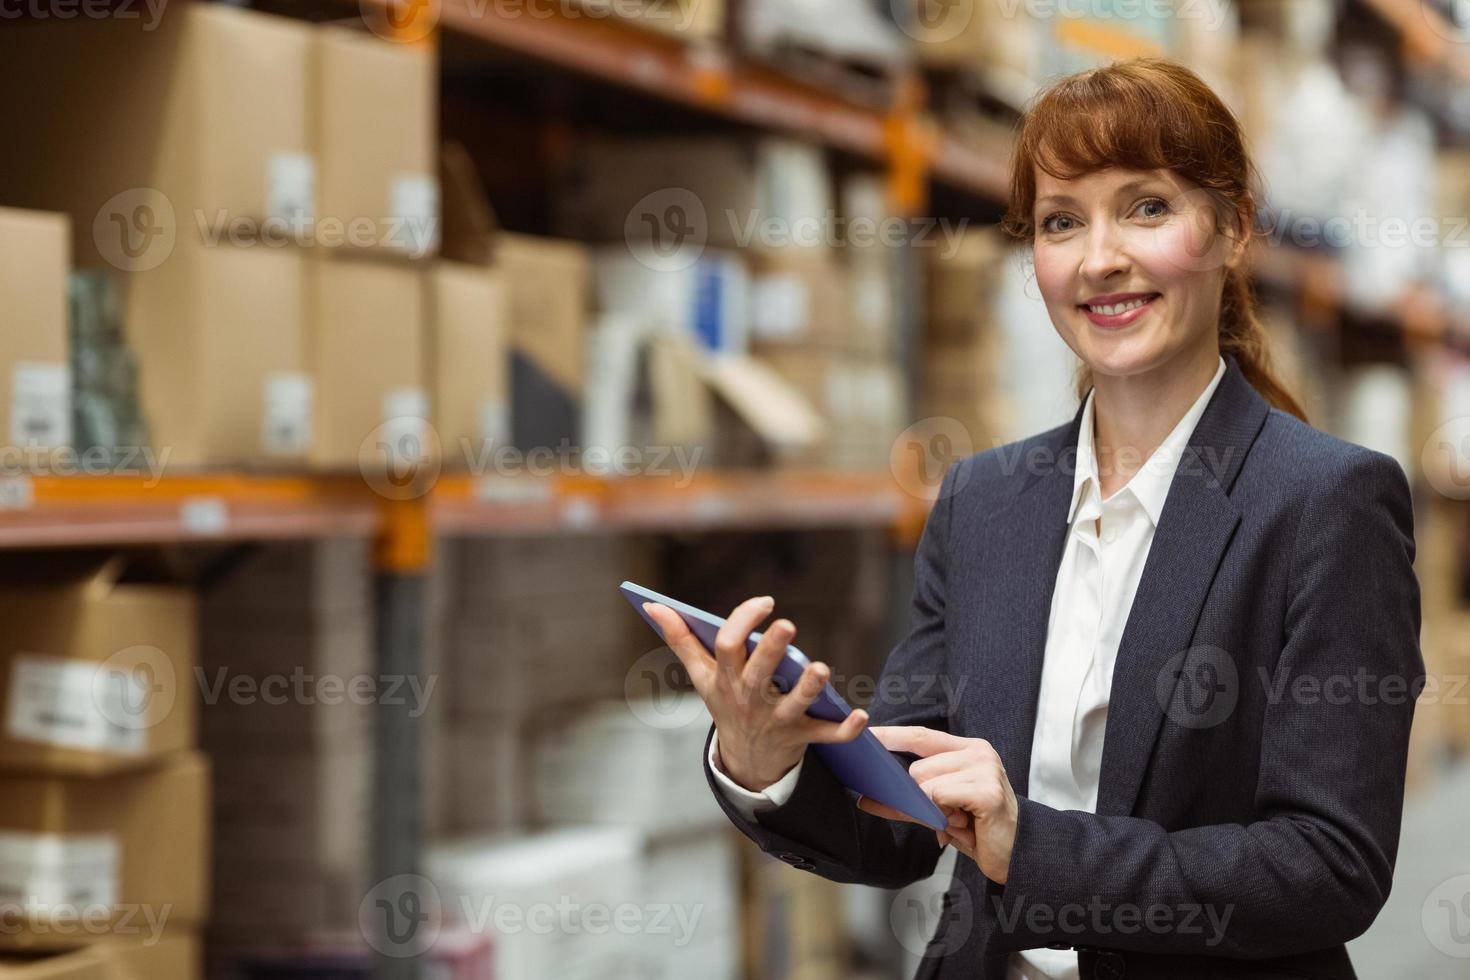 Smiling businesswoman scrolling on digital tablet photo